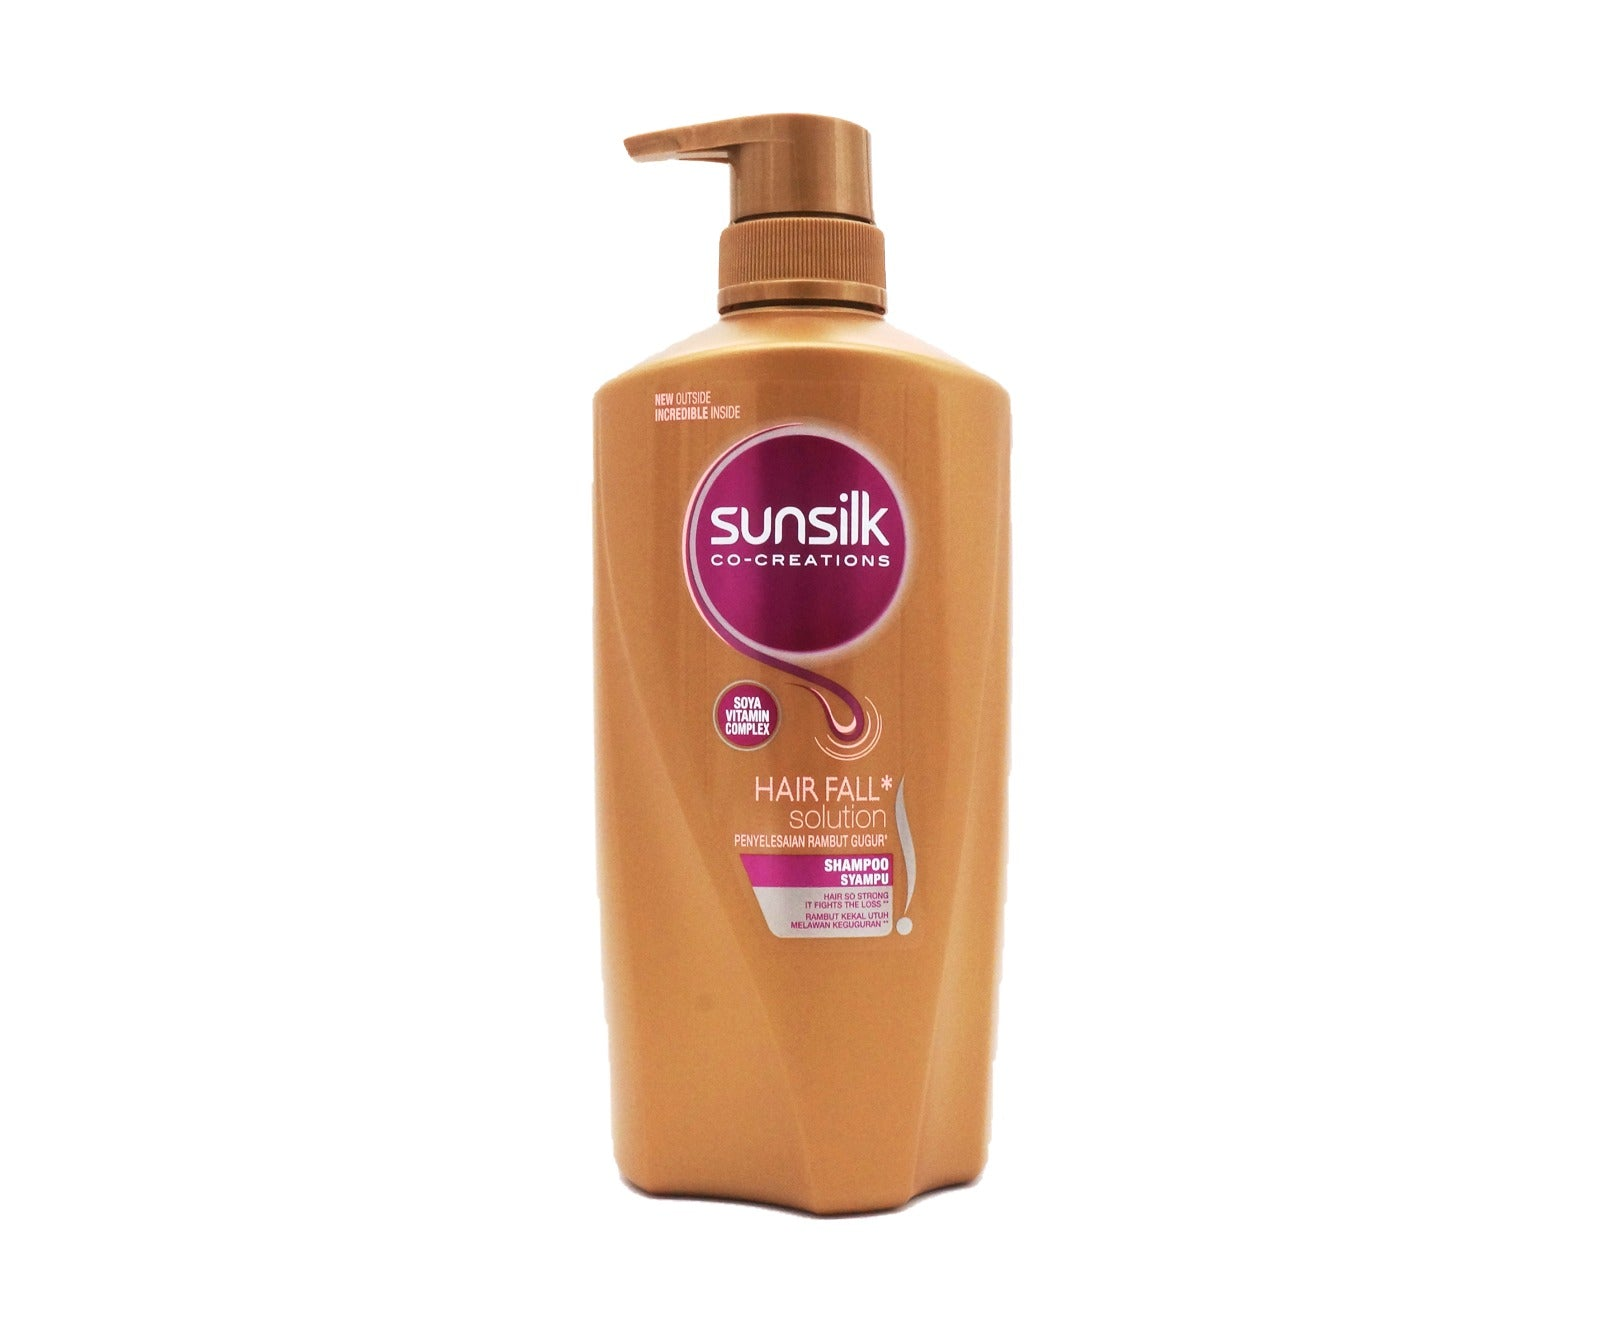 Sunsilk Shampoo - Hairfall Solution (650ml – Piece)